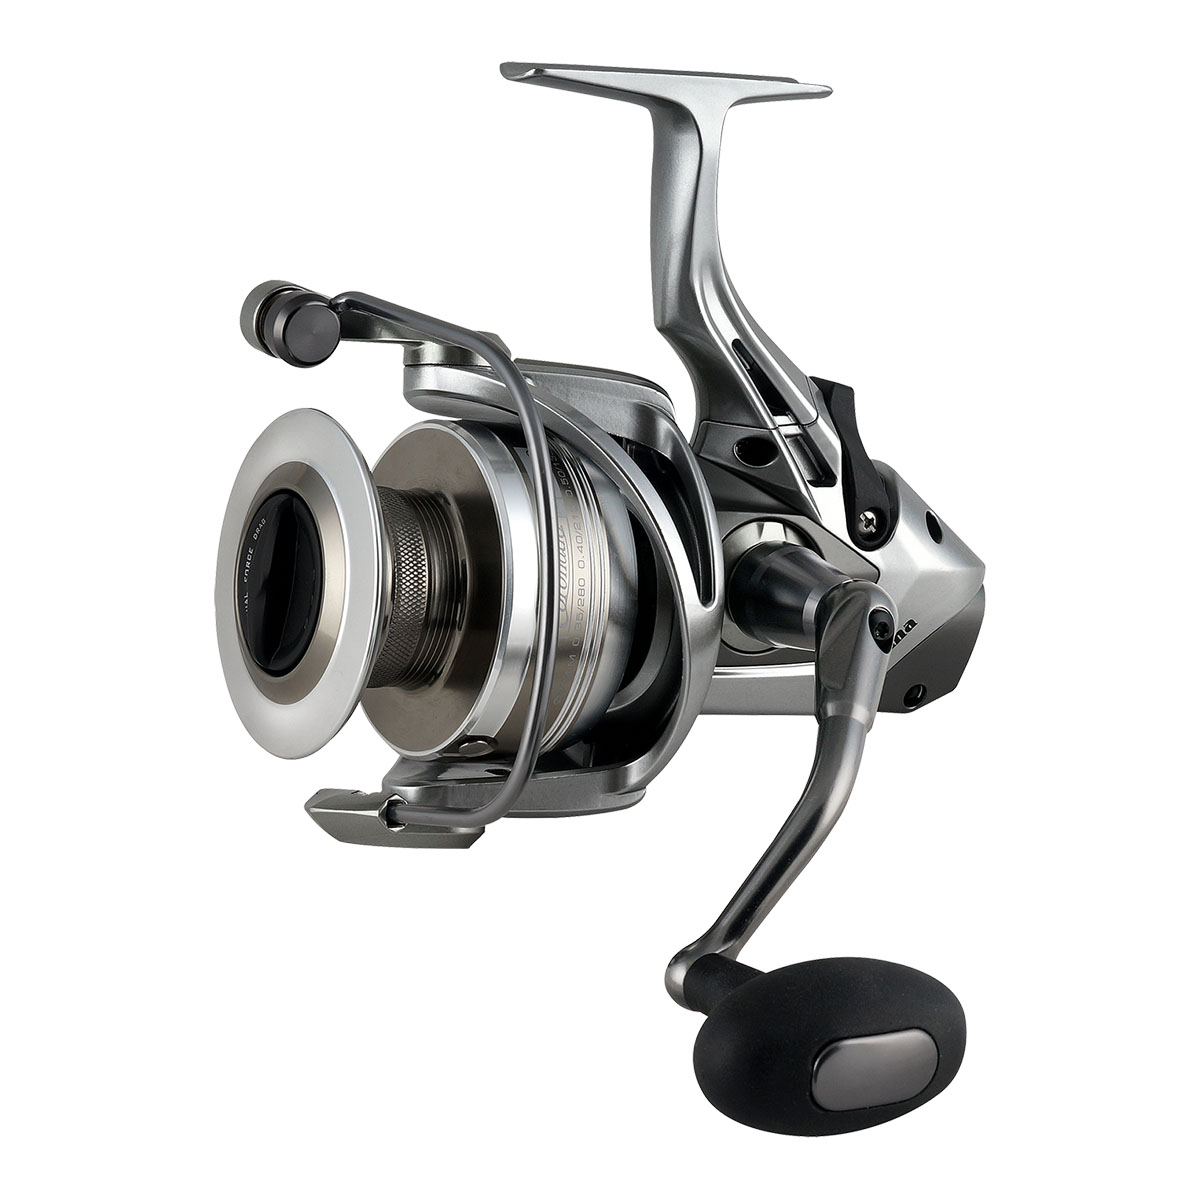 Coronado CDX Baitfeeder Spinning Reel - Okuma Coronado CDX Baitfeeder Spinning Reel-On/off auto trip bait feeding system -Precision Dual Force Drag system-Carbonite drag washers-Slow oscillation system